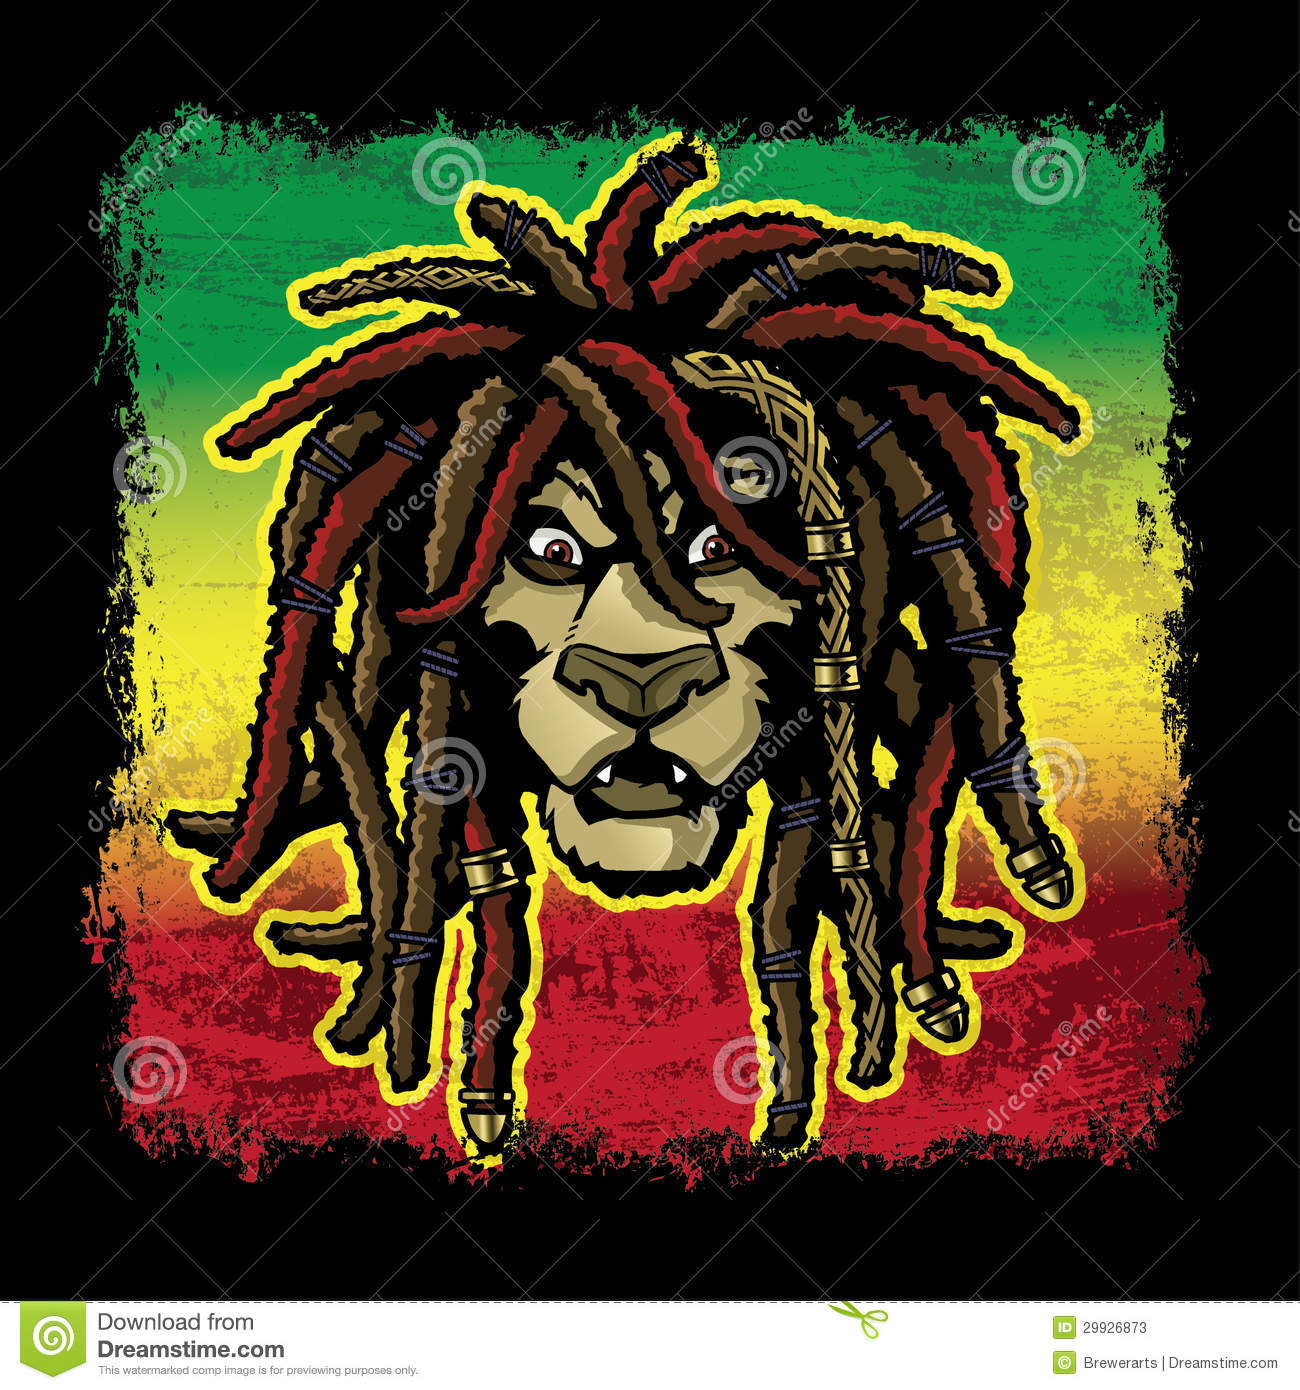 Rastafarian 2: Rastafarian Lion With Dreadlocks Stock Vector